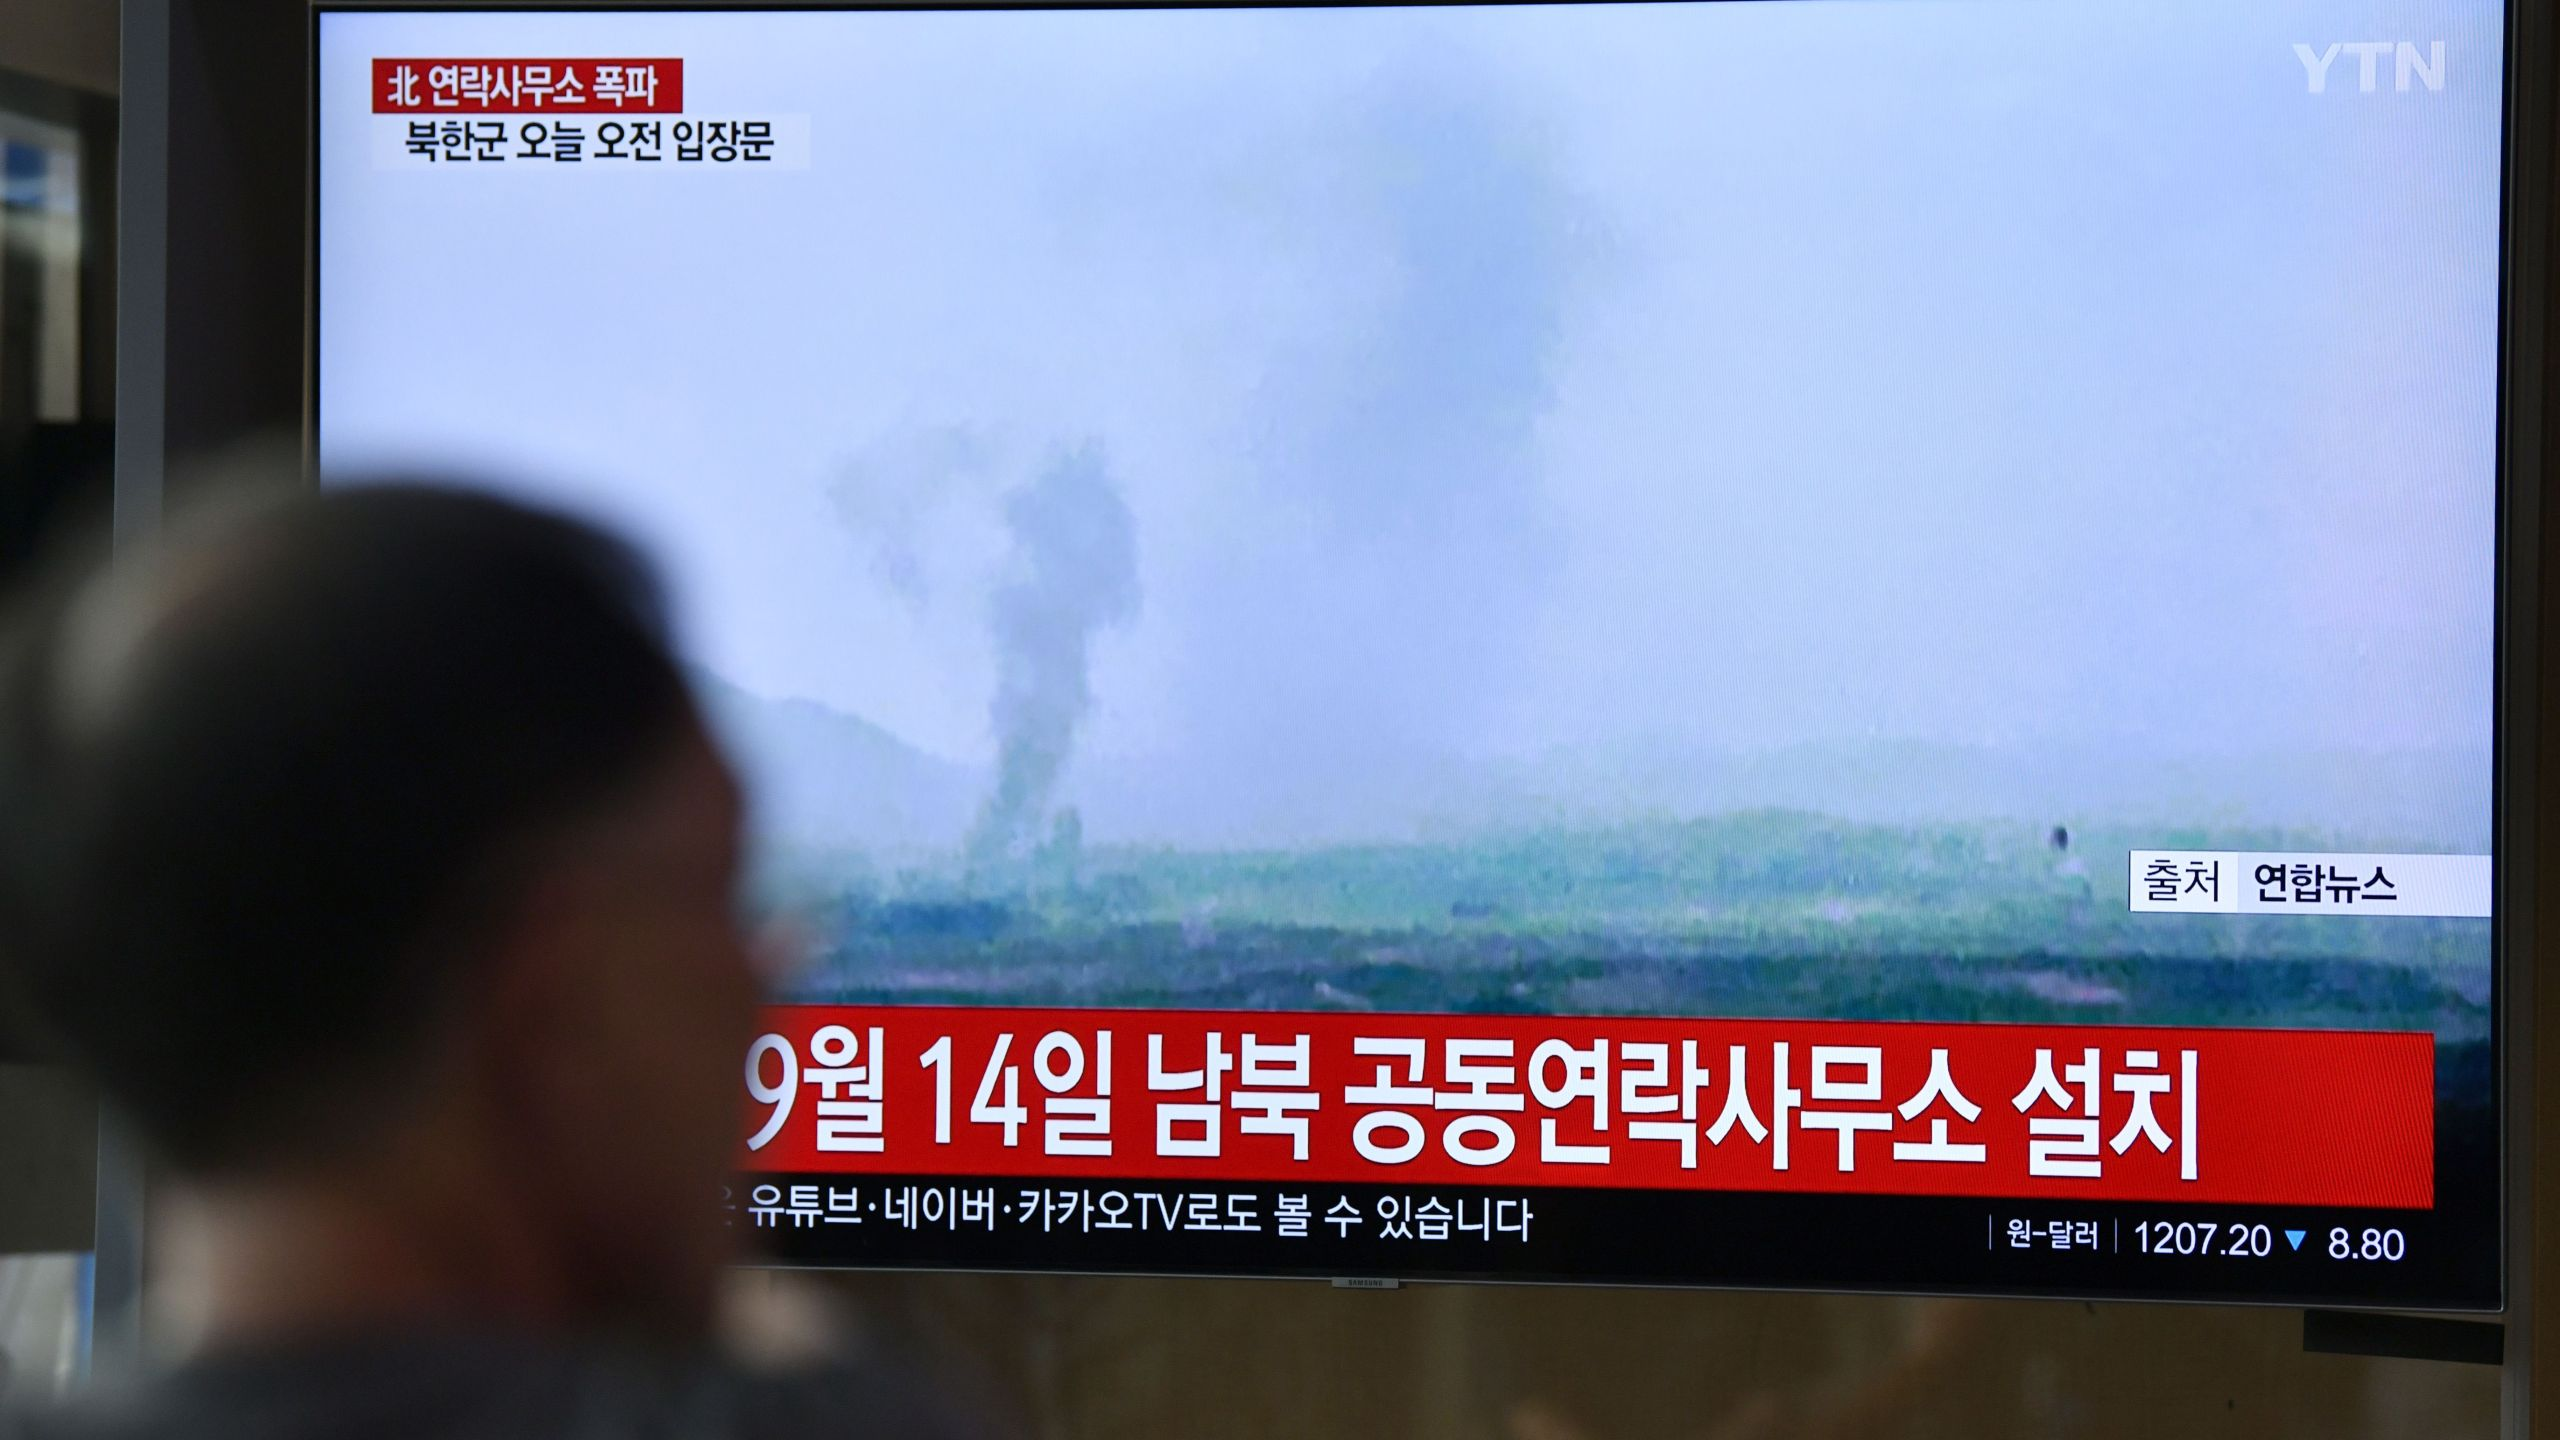 People watch a television news screen showing an explosion of an inter-Korean liaison office in North Korea's Kaesong Industrial Complex, at a railway station in Seoul on June 16, 2020. (JUNG YEON-JE/AFP via Getty Images)